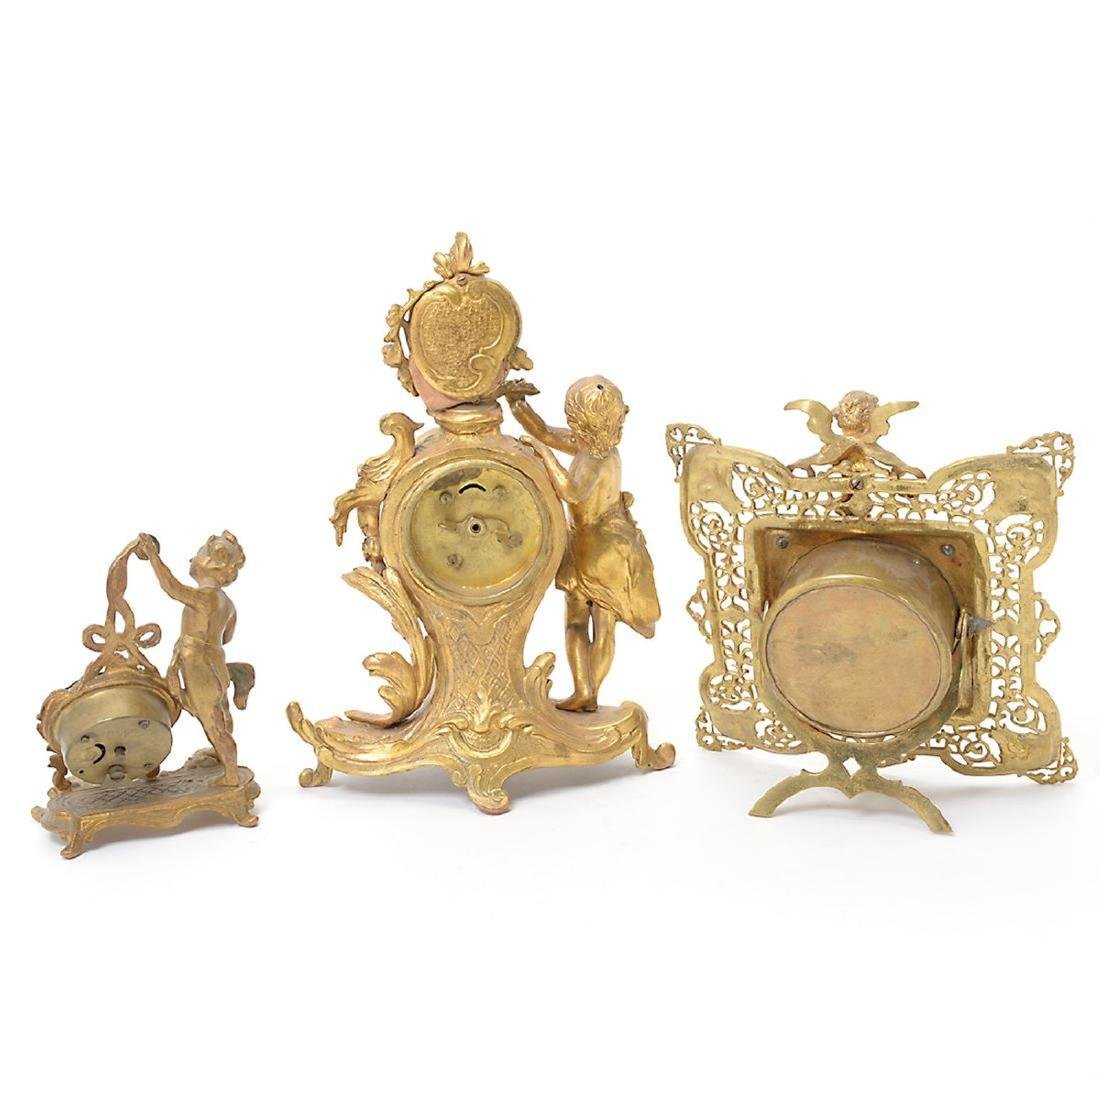 Three Louis XV Style Figural Clocks - 4